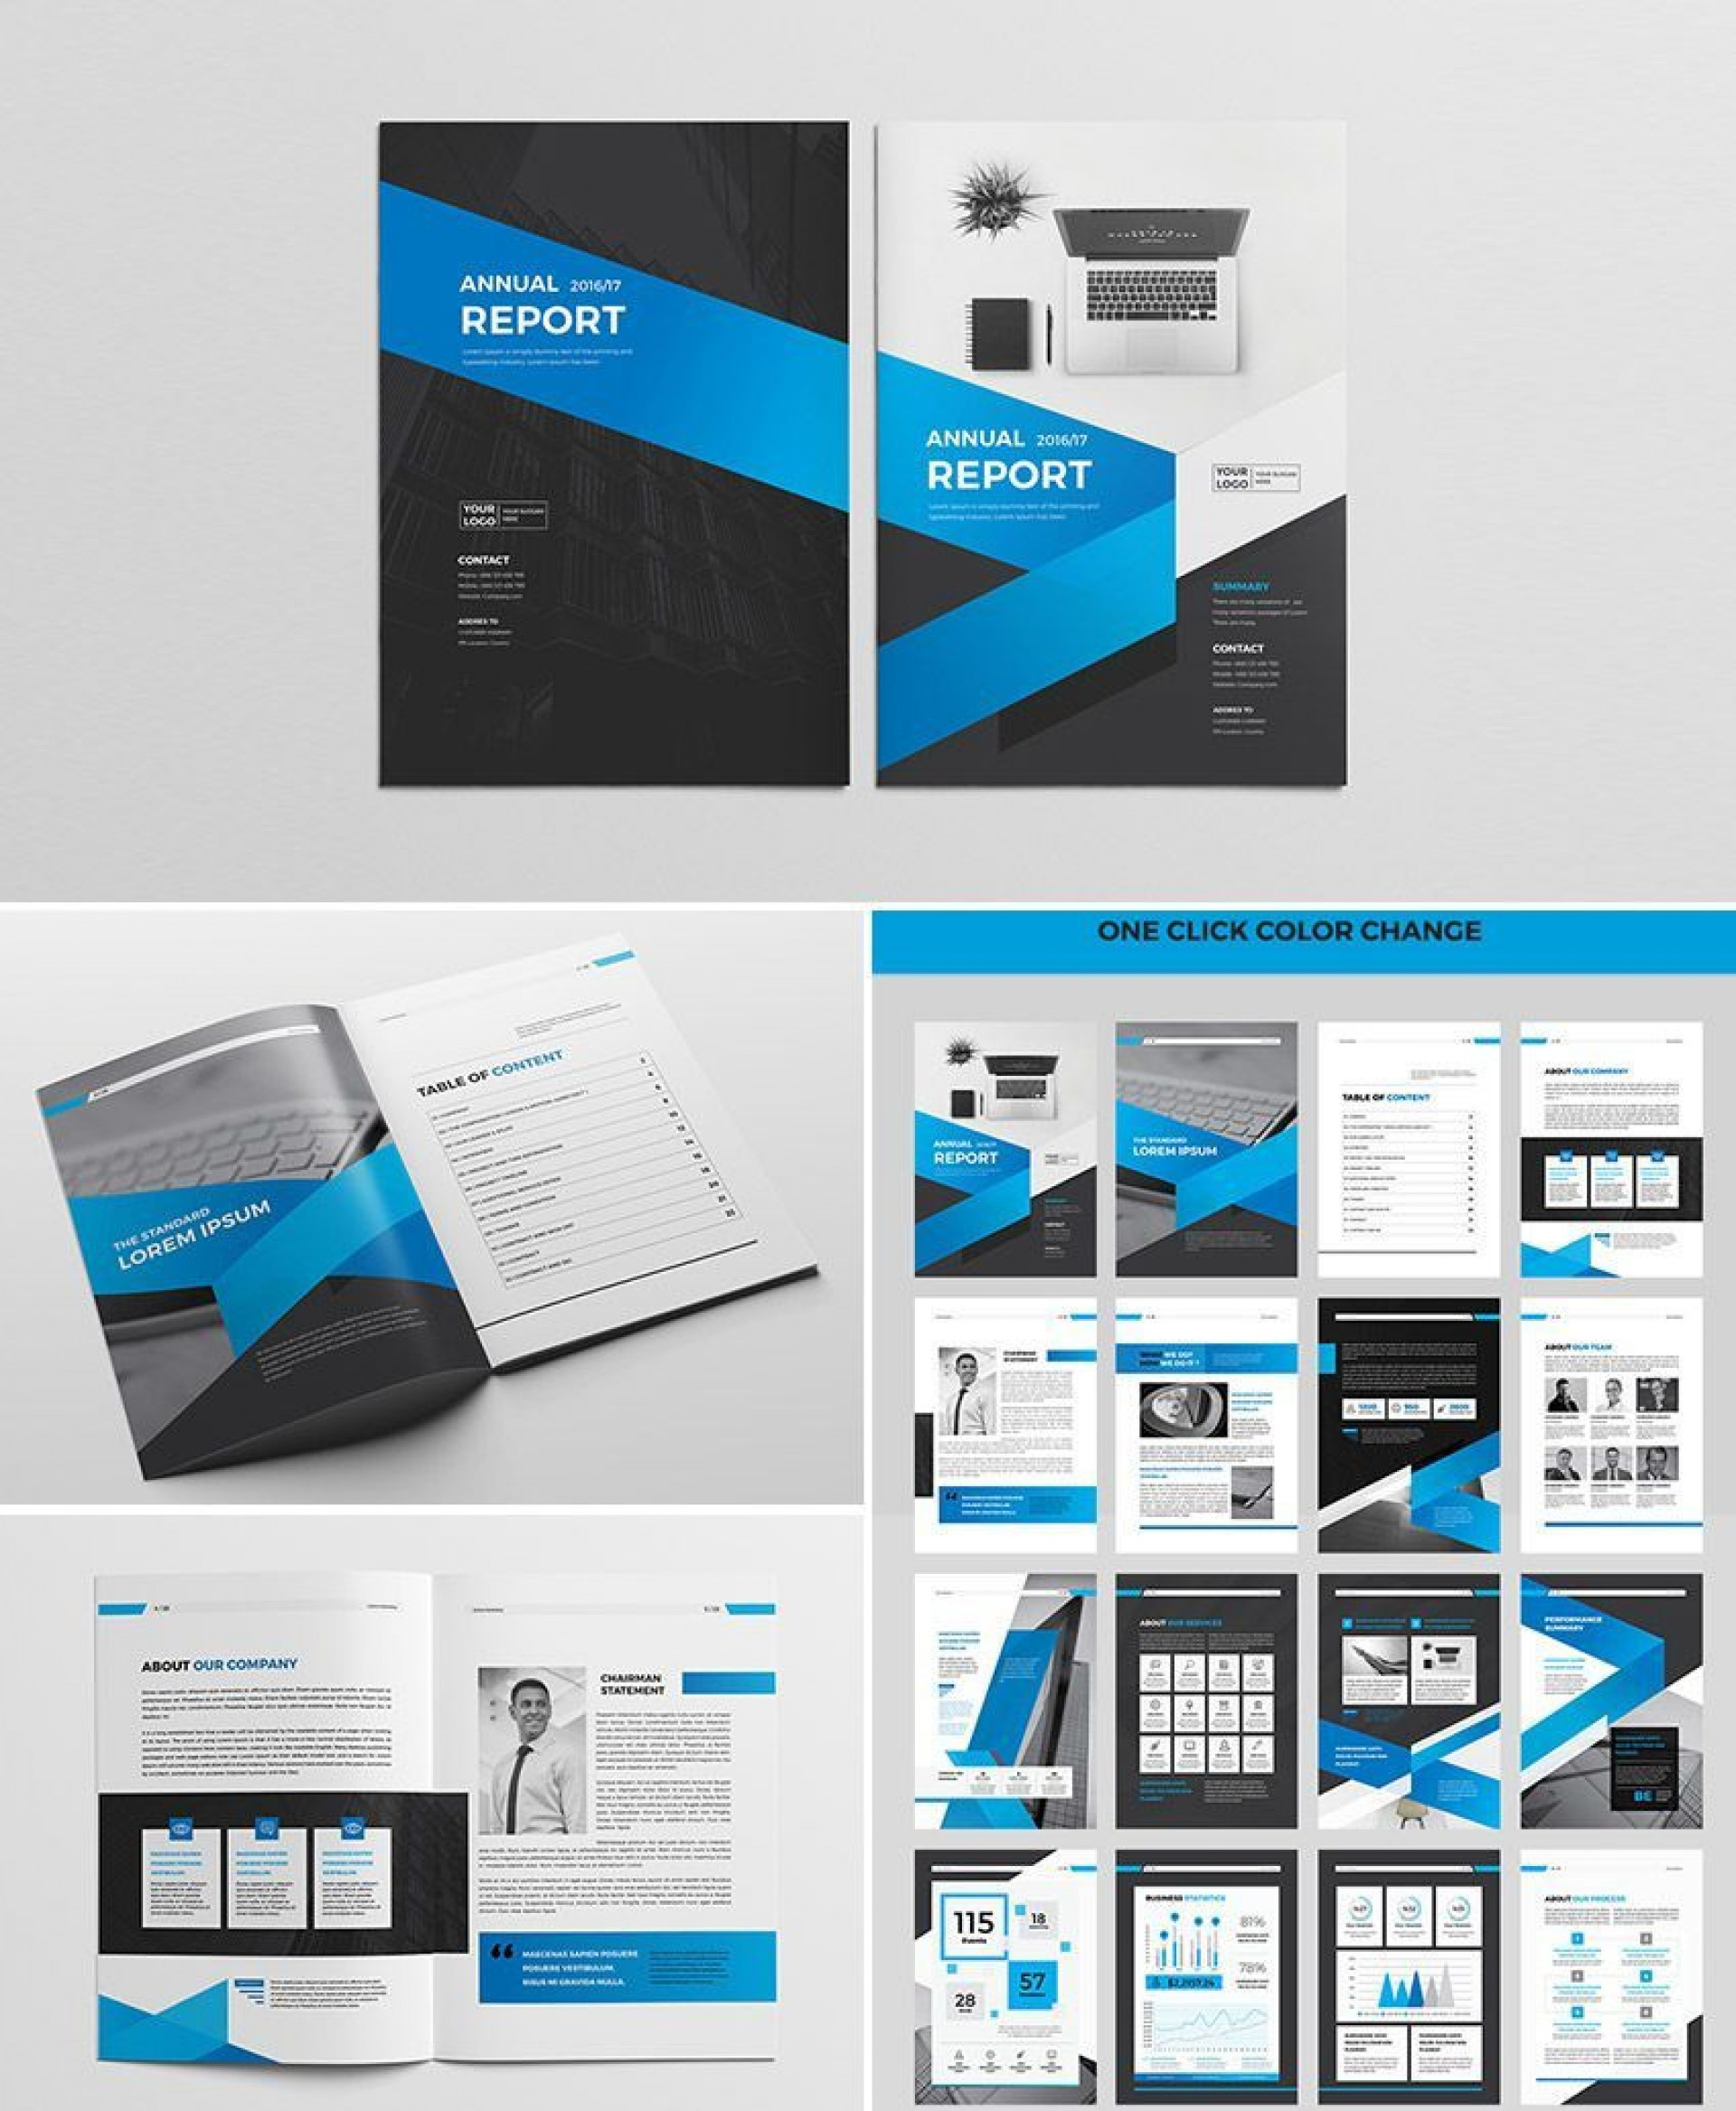 004 Awful Annual Report Design Template Indesign Highest Clarity  Free Download1920